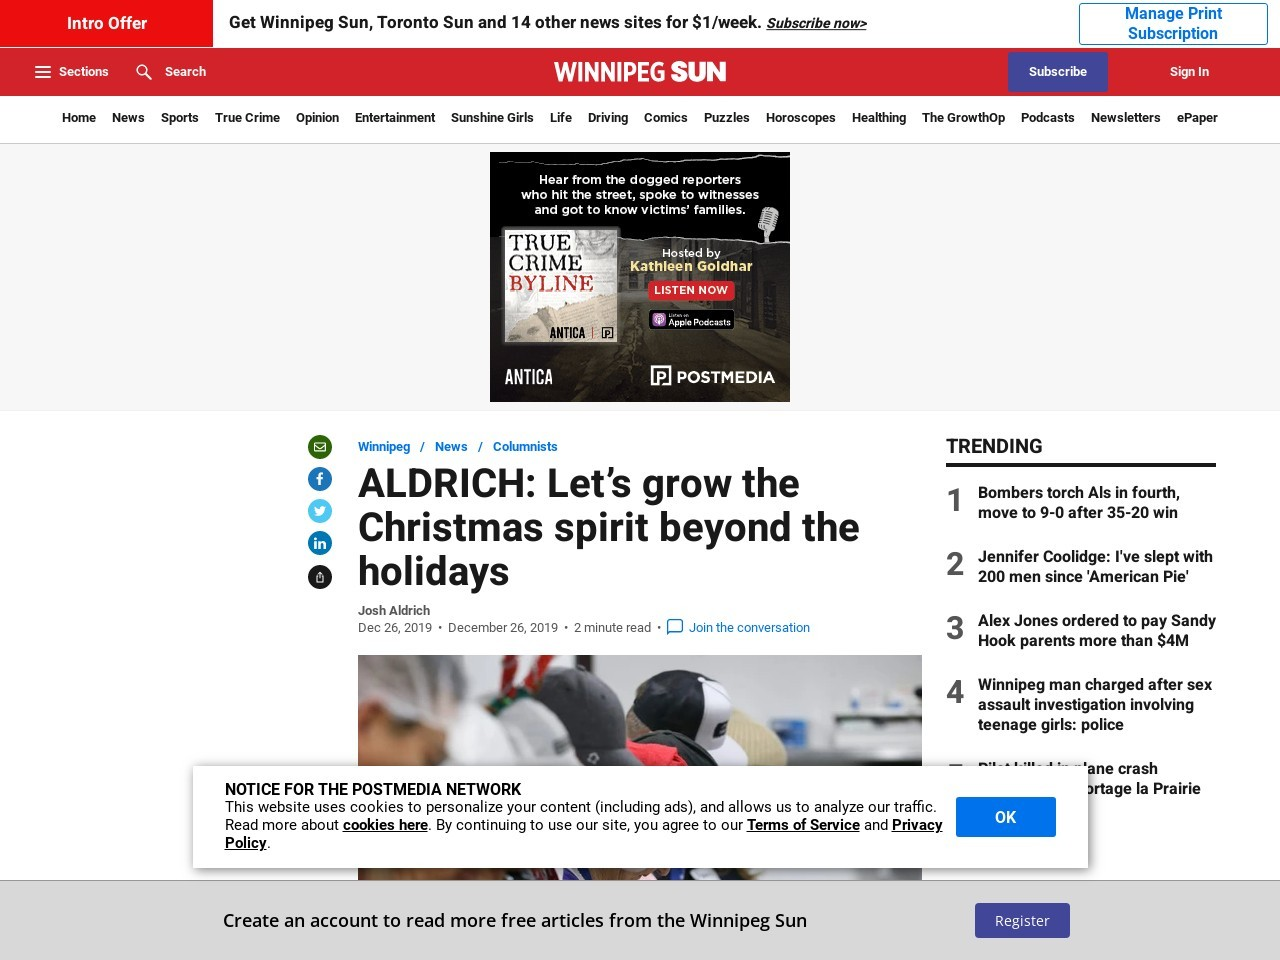 ALDRICH: Let's grow the Christmas spirit beyond the holidays